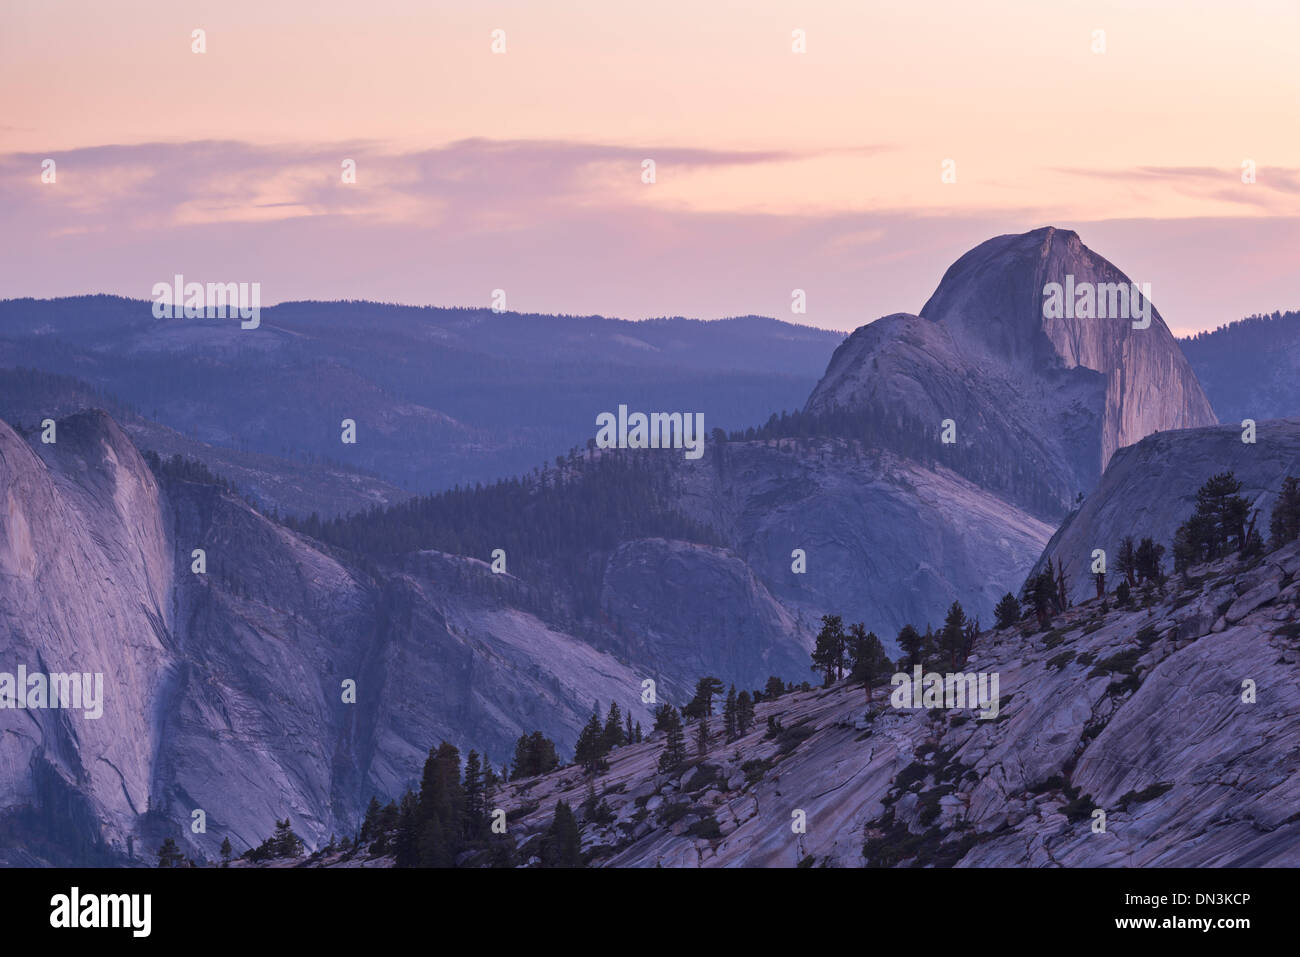 Twilight over Half Dome, Yosemite National Park, California, USA. Autumn (October) 2013. - Stock Image